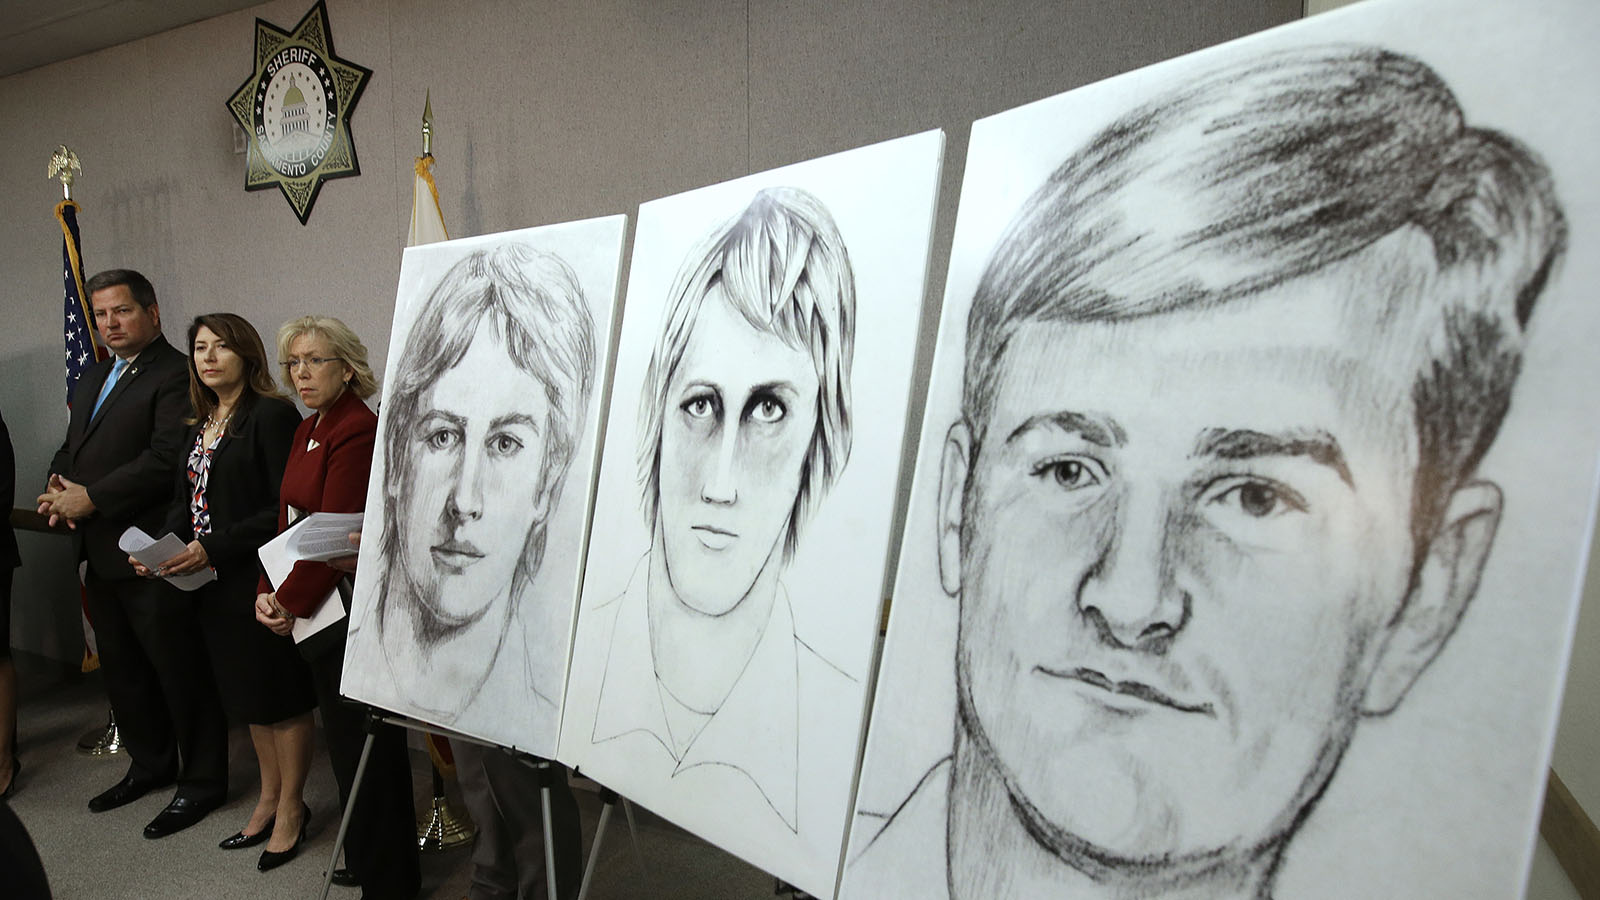 """FILE - In this June 15, 2016, file photo, law enforcement drawings of a suspected serial killer believed to have committed at least 12 murders across California in the 1970's and 1980's are displayed at a news conference about the investigation, in Sacramento, Calif. The Sacramento County District Attorney's Office plans to make a 'major announcement"""" Wednesday, April 25, 2018, in the case of the elusive serial killer. (AP Photo/Rich Pedroncelli, File)"""